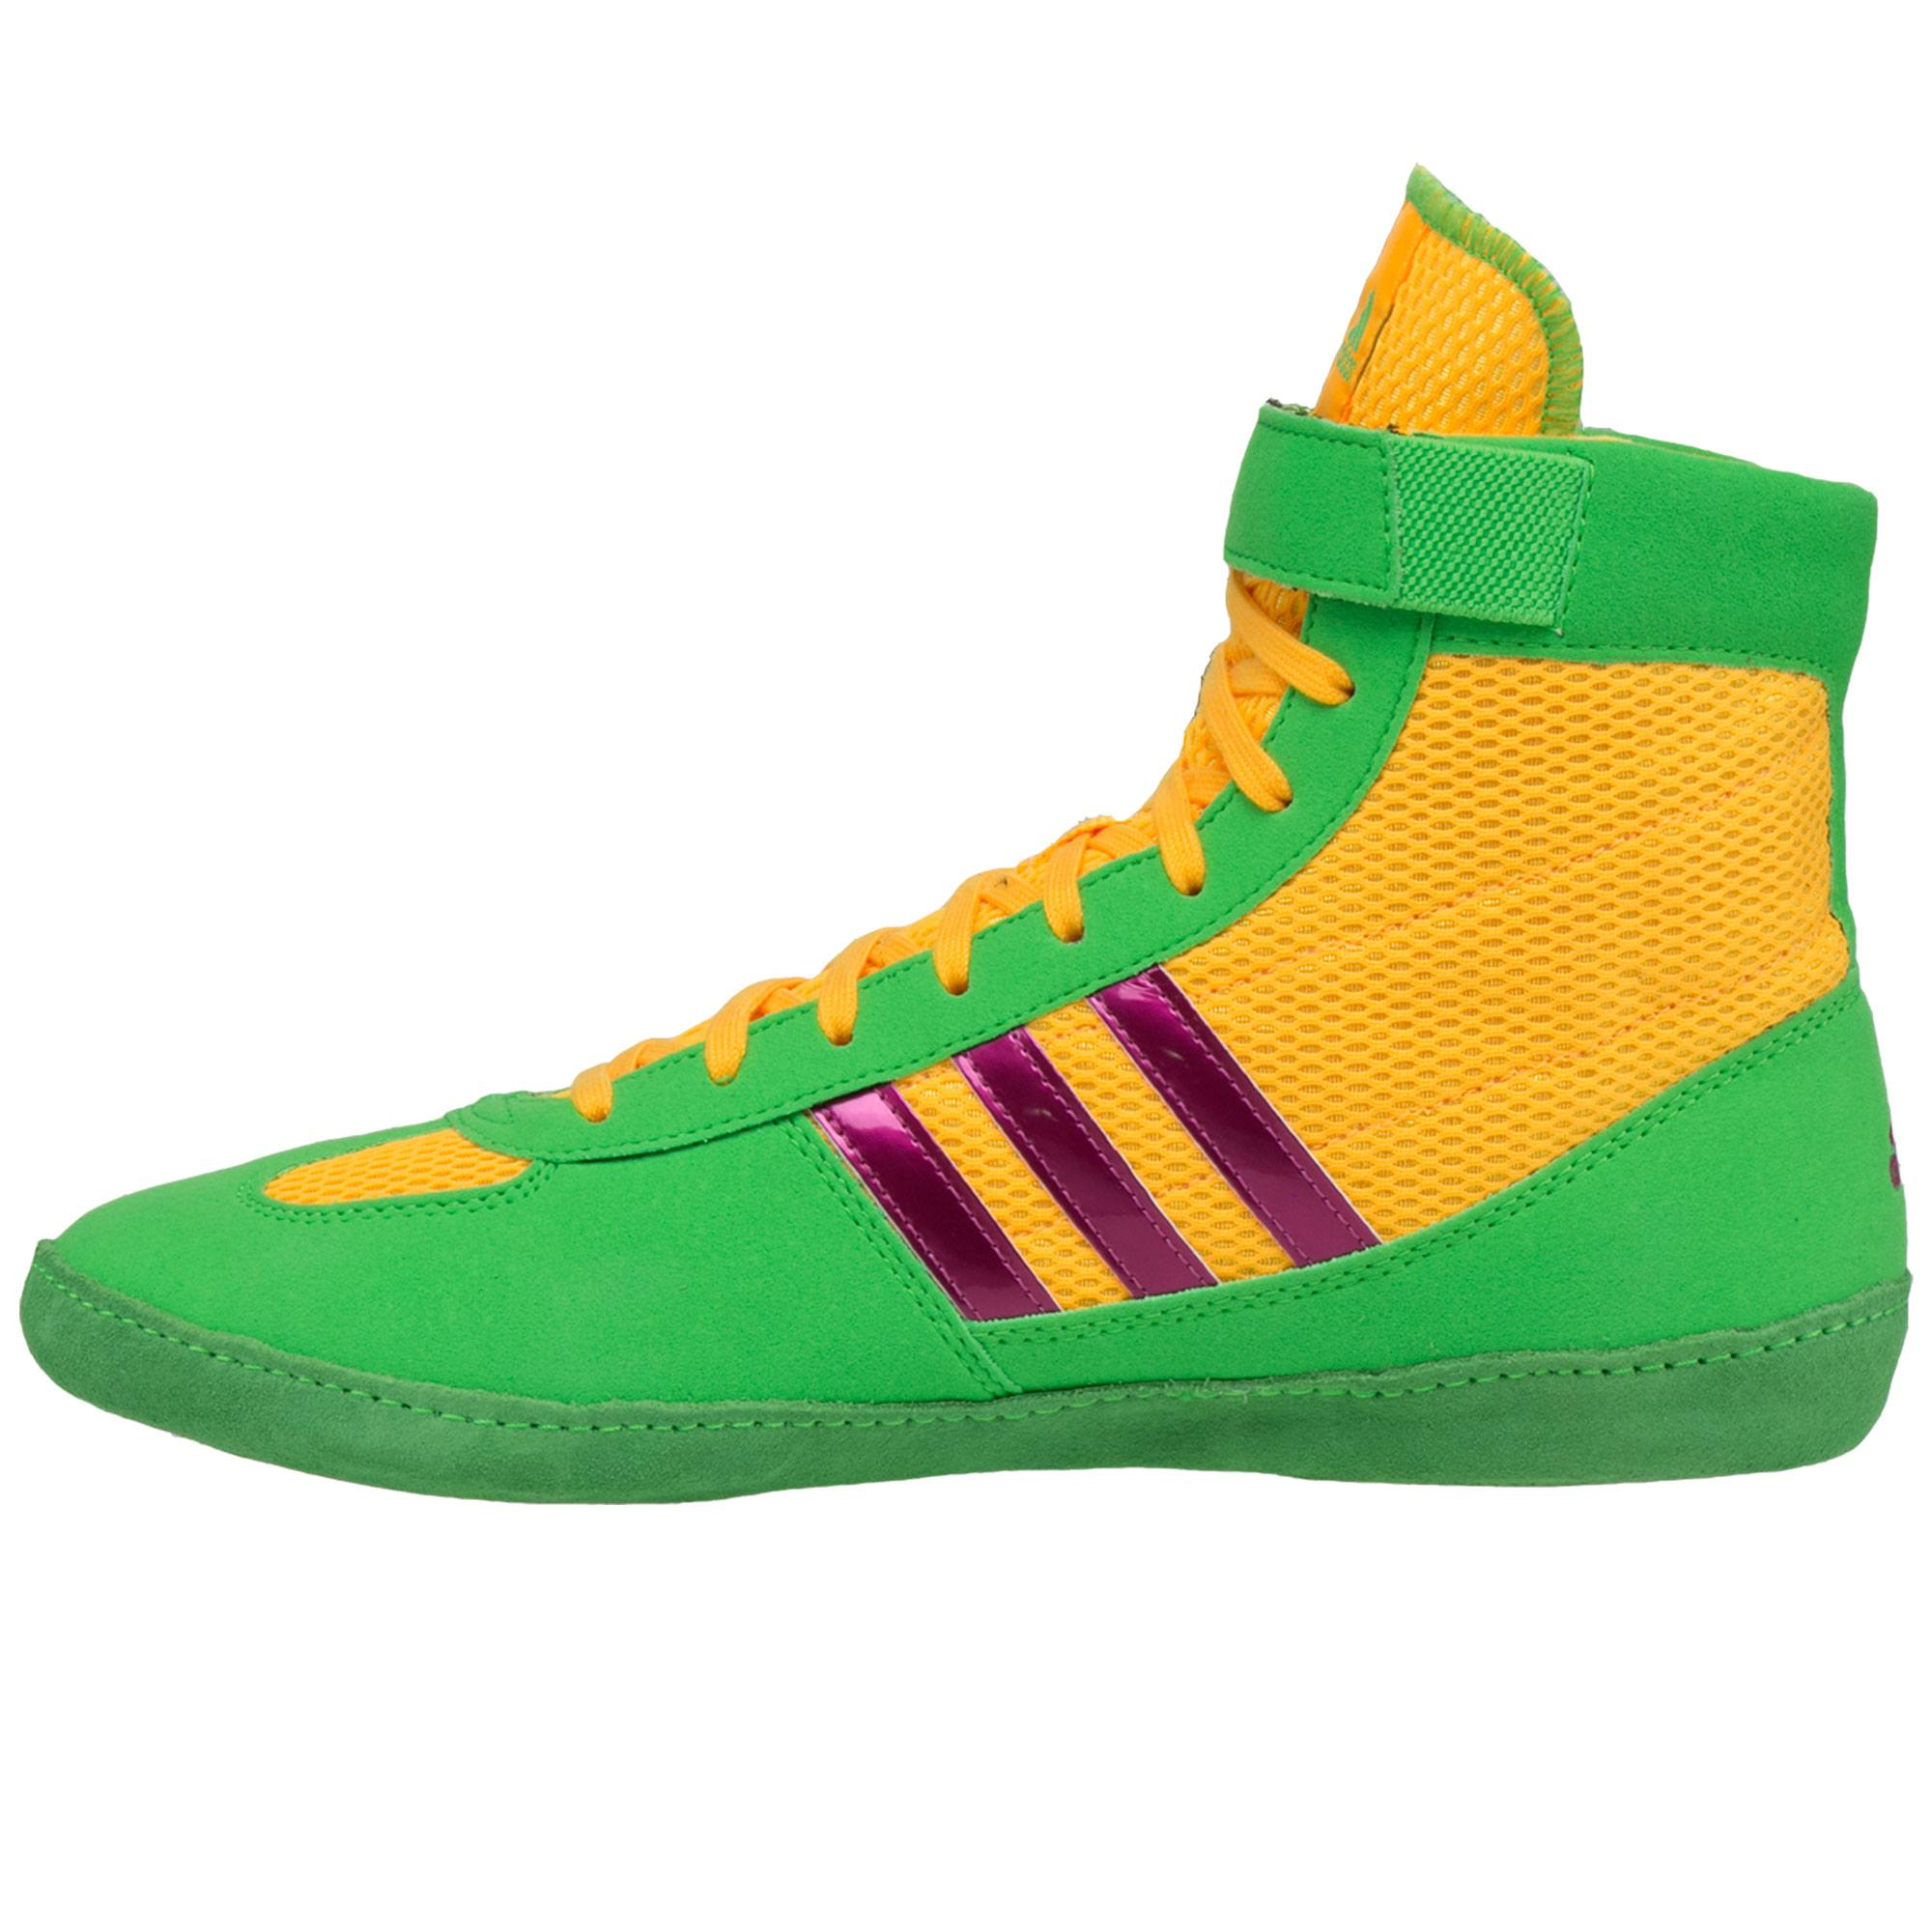 cheap for discount 91d2b ae833 ... Combat Speed 4 Green Yellow Pink frontAdidas Combat Speed 4 Green  Yellow Pink backAdidas Combat Speed 4 Green Yellow Pink sole